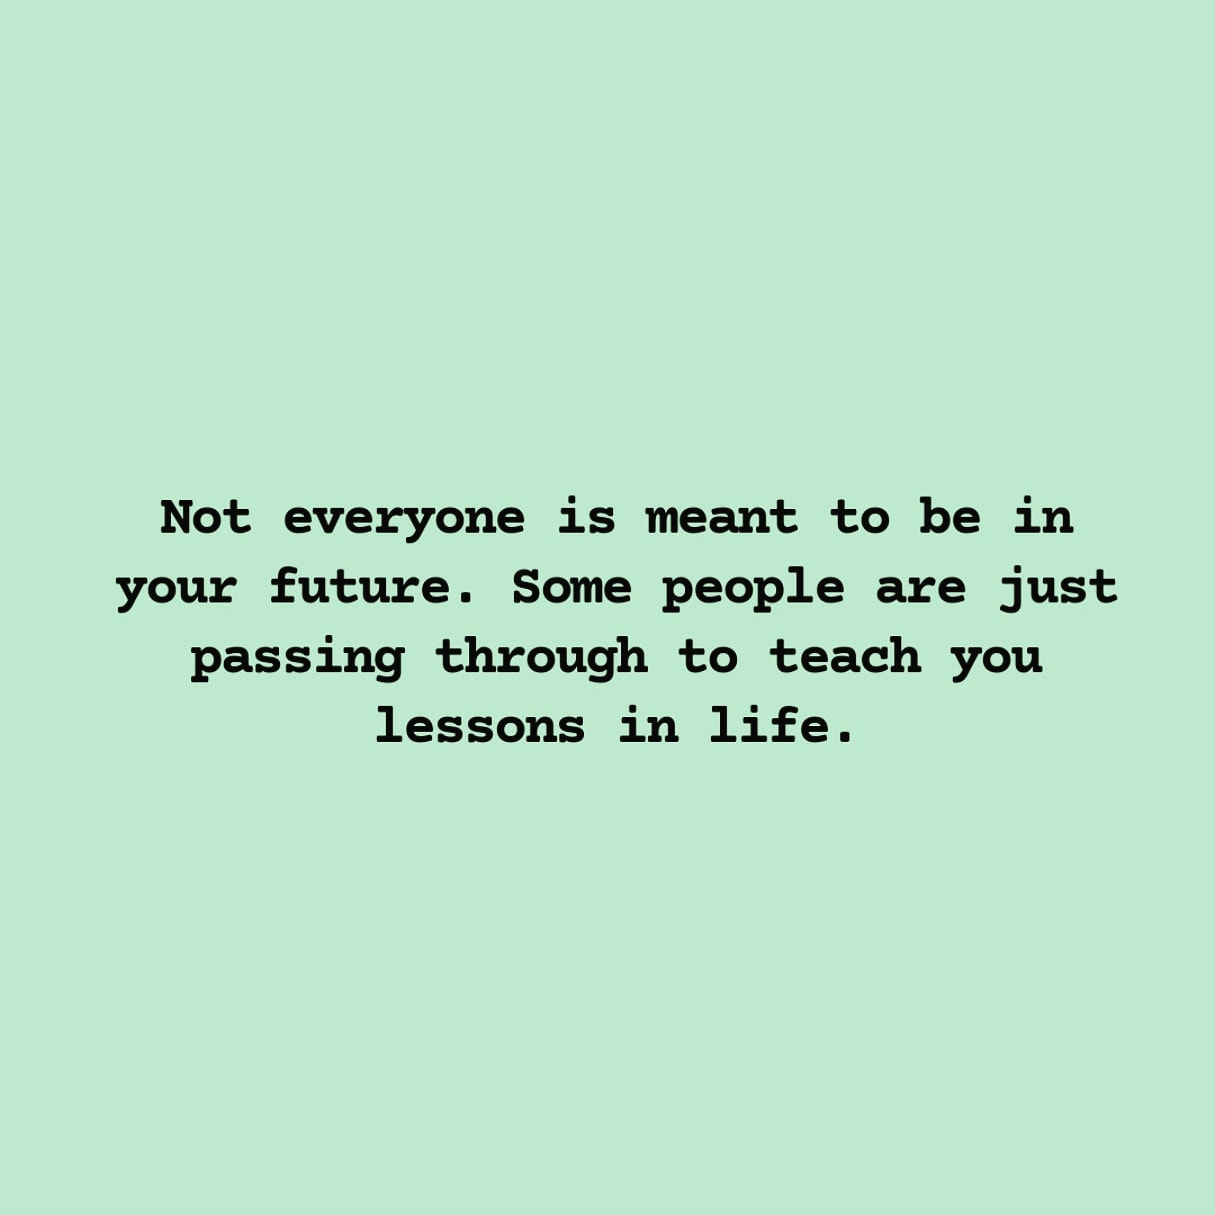 Not everyone is meant to be in your future. some people are just passing through to teach you lessons in life. (1080X1080)